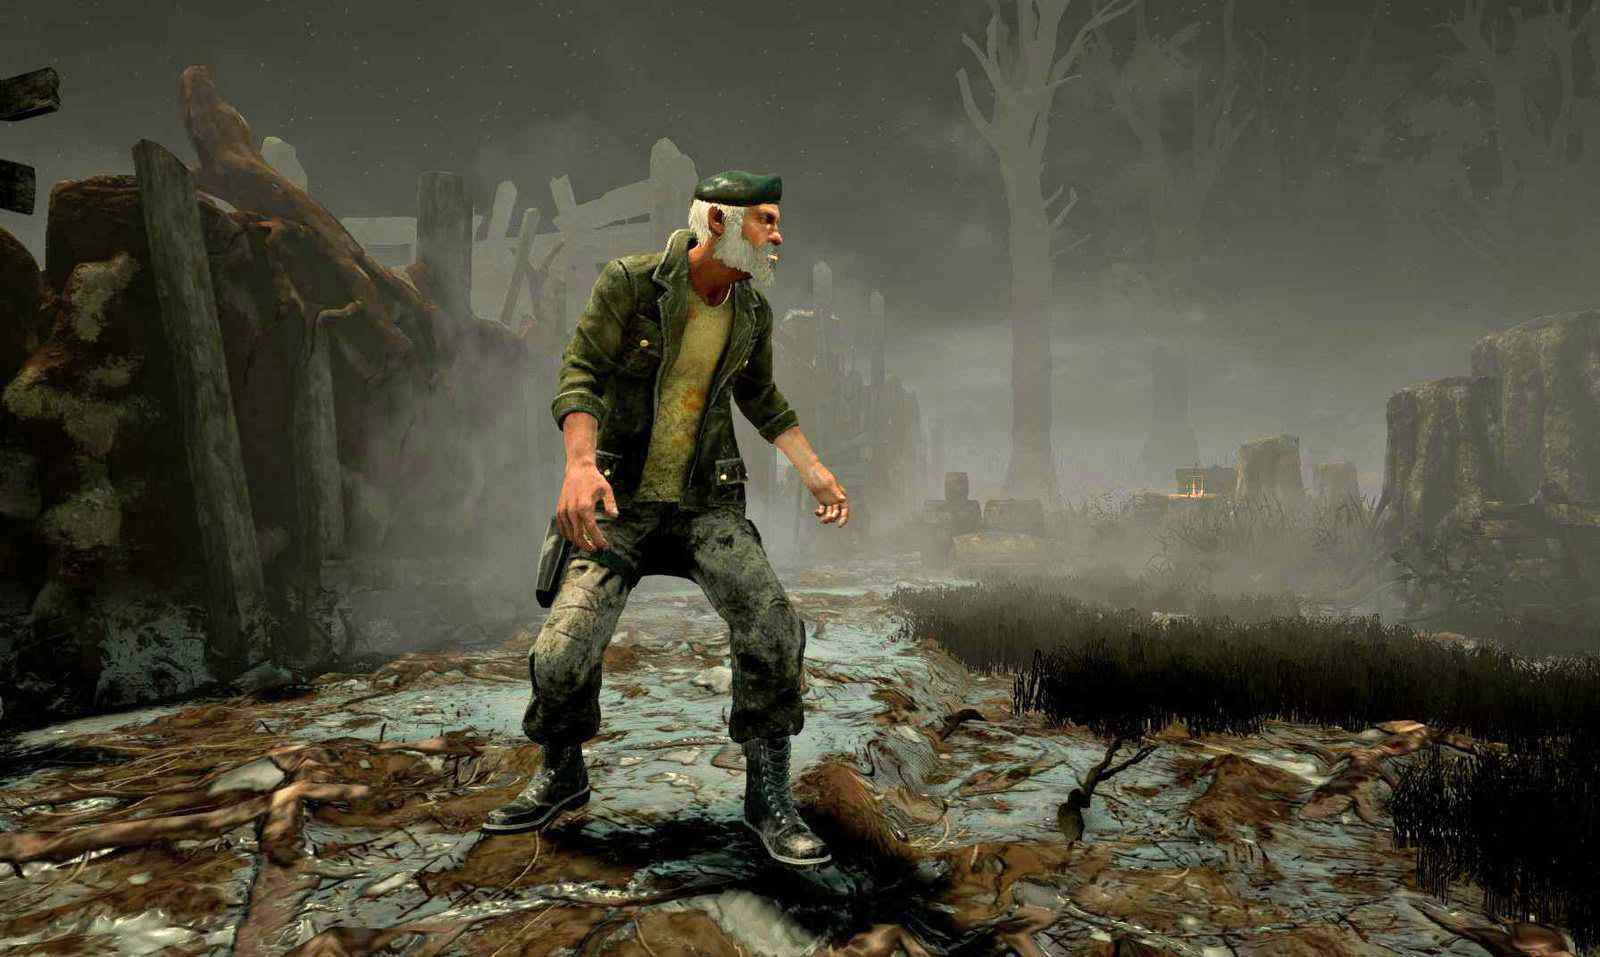 Left 4 Dead' character returns to haunt 'Dead by Daylight'